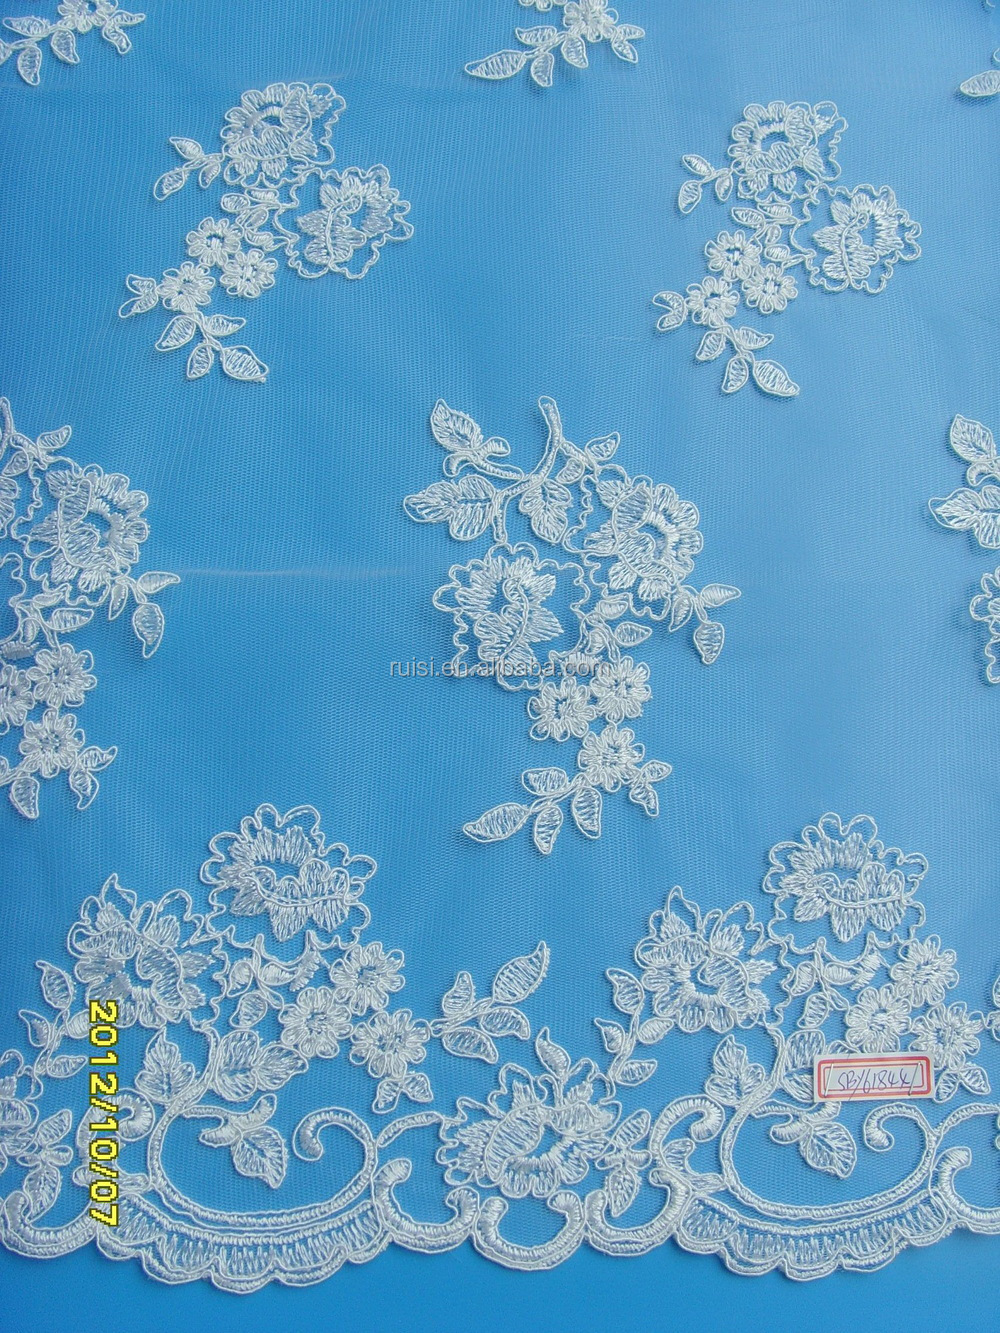 Fancy ivory hand embroidered beaded tulle lace fabric for